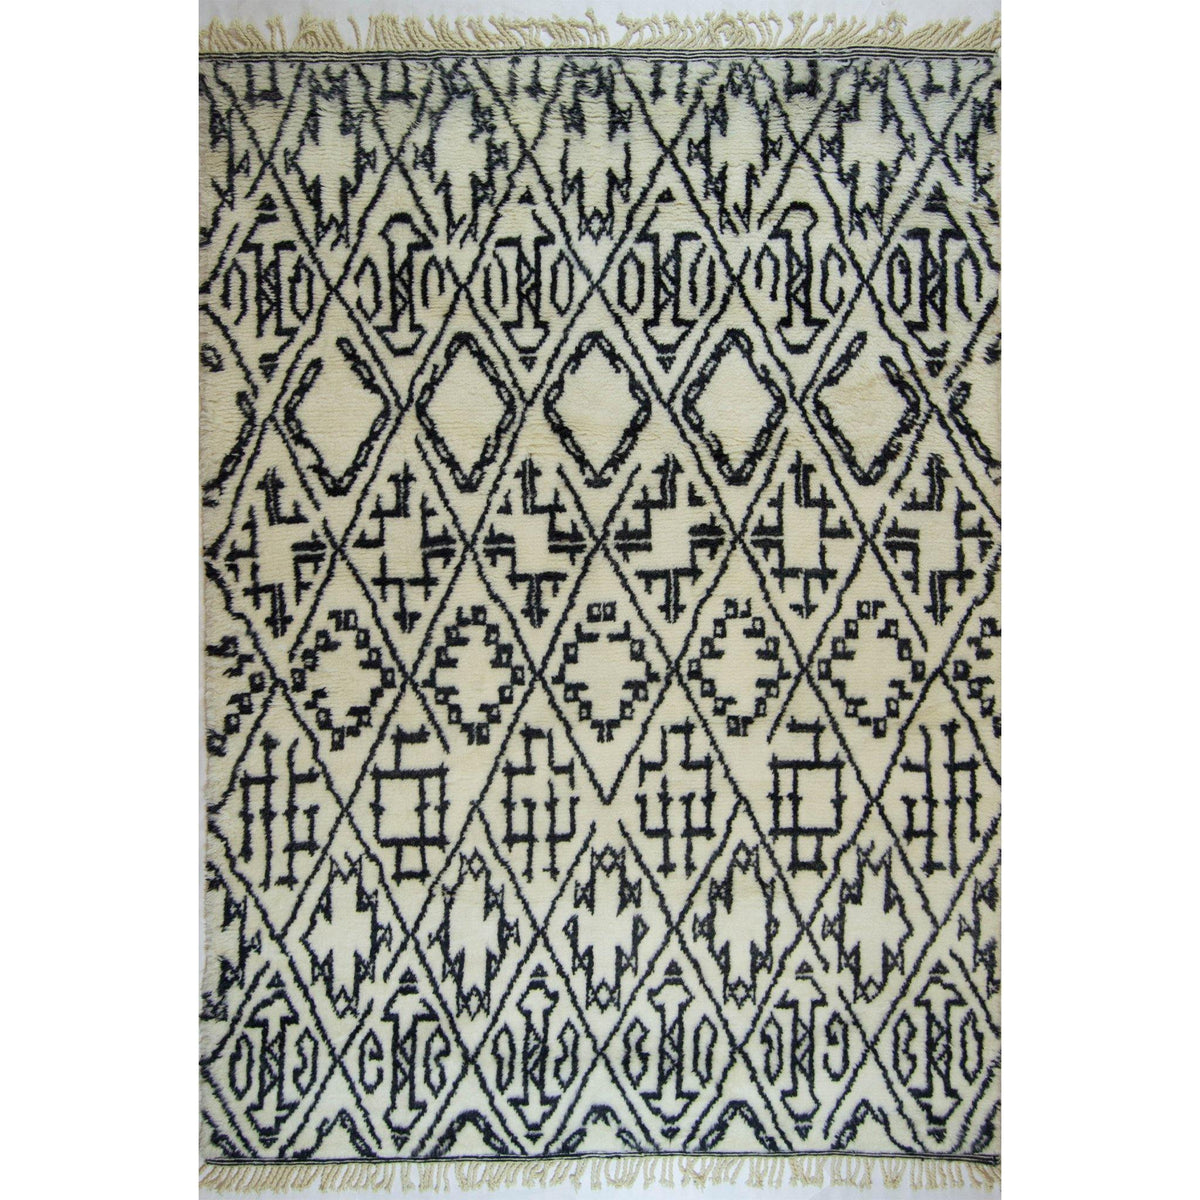 Modern 100% Wool Moroccan Rug 192cm x 262cm Persian-Rug | House-of-Haghi | NewMarket | Auckland | NZ | Handmade Persian Rugs | Hand Knotted Persian Rugs